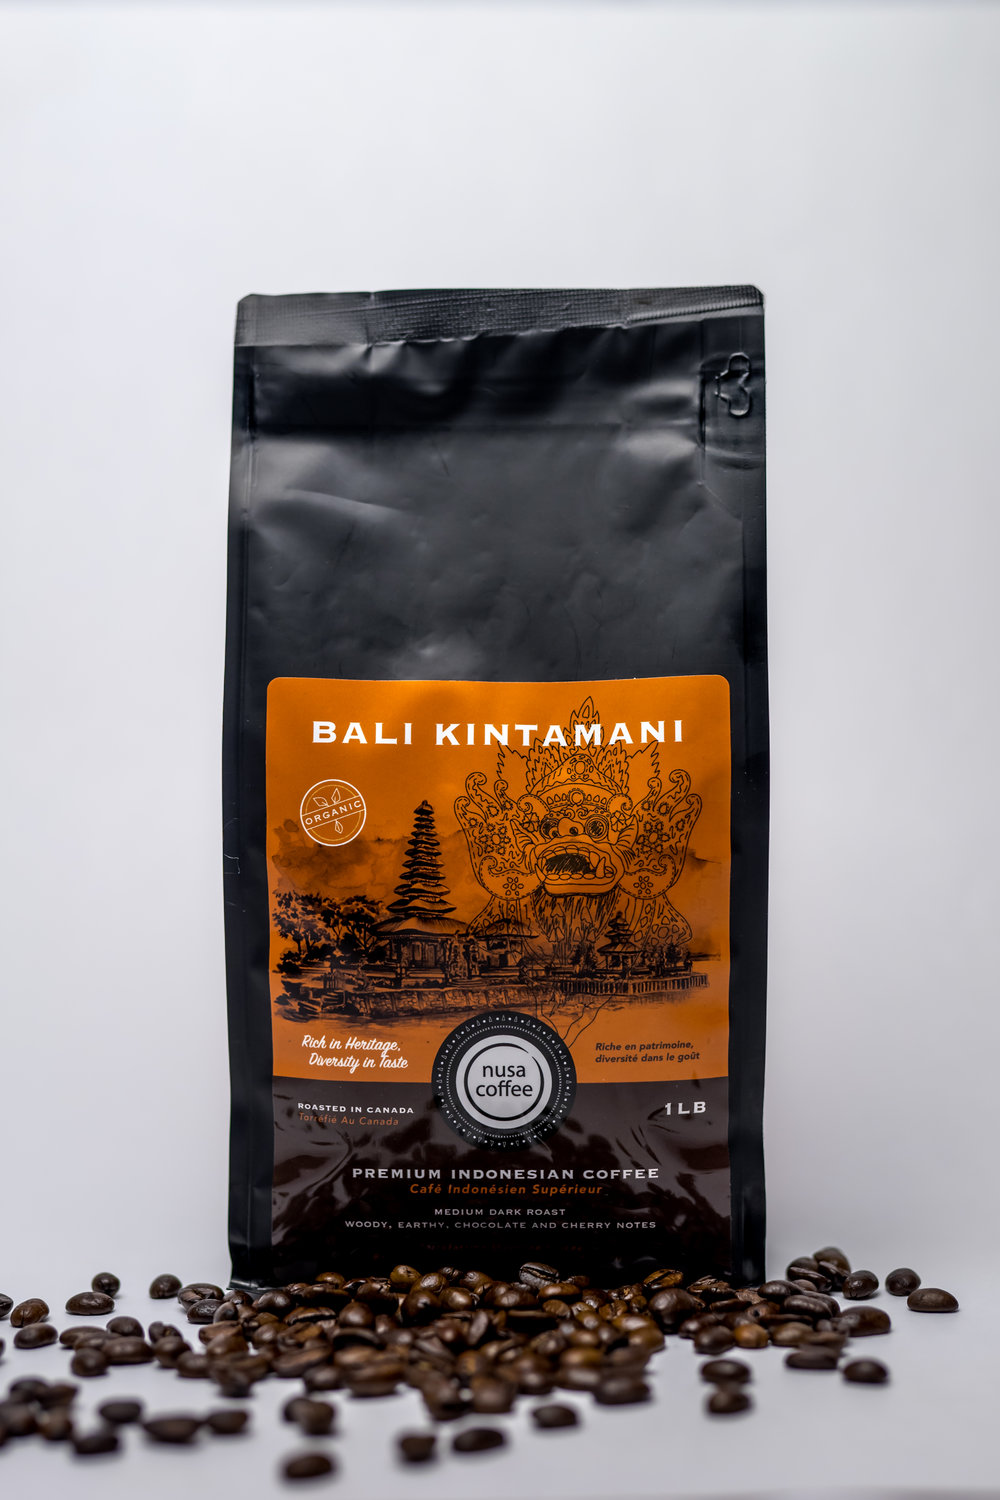 Bali Kintamani - Roasting Profile: Medium - this allows the emergence of both roasted and green beans flavours.Origin: Kintamani Highlands, Bali. About 122 metre elevation, shade-grown coffee plants are grown in between banana, citrus, and tangerine fruit trees; allowing equal harvest time for the fruits and the cherries which support the livelihood of farmers in this region.Processing Method: full wash - resulting in smooth, balanced, and fruity flavour.